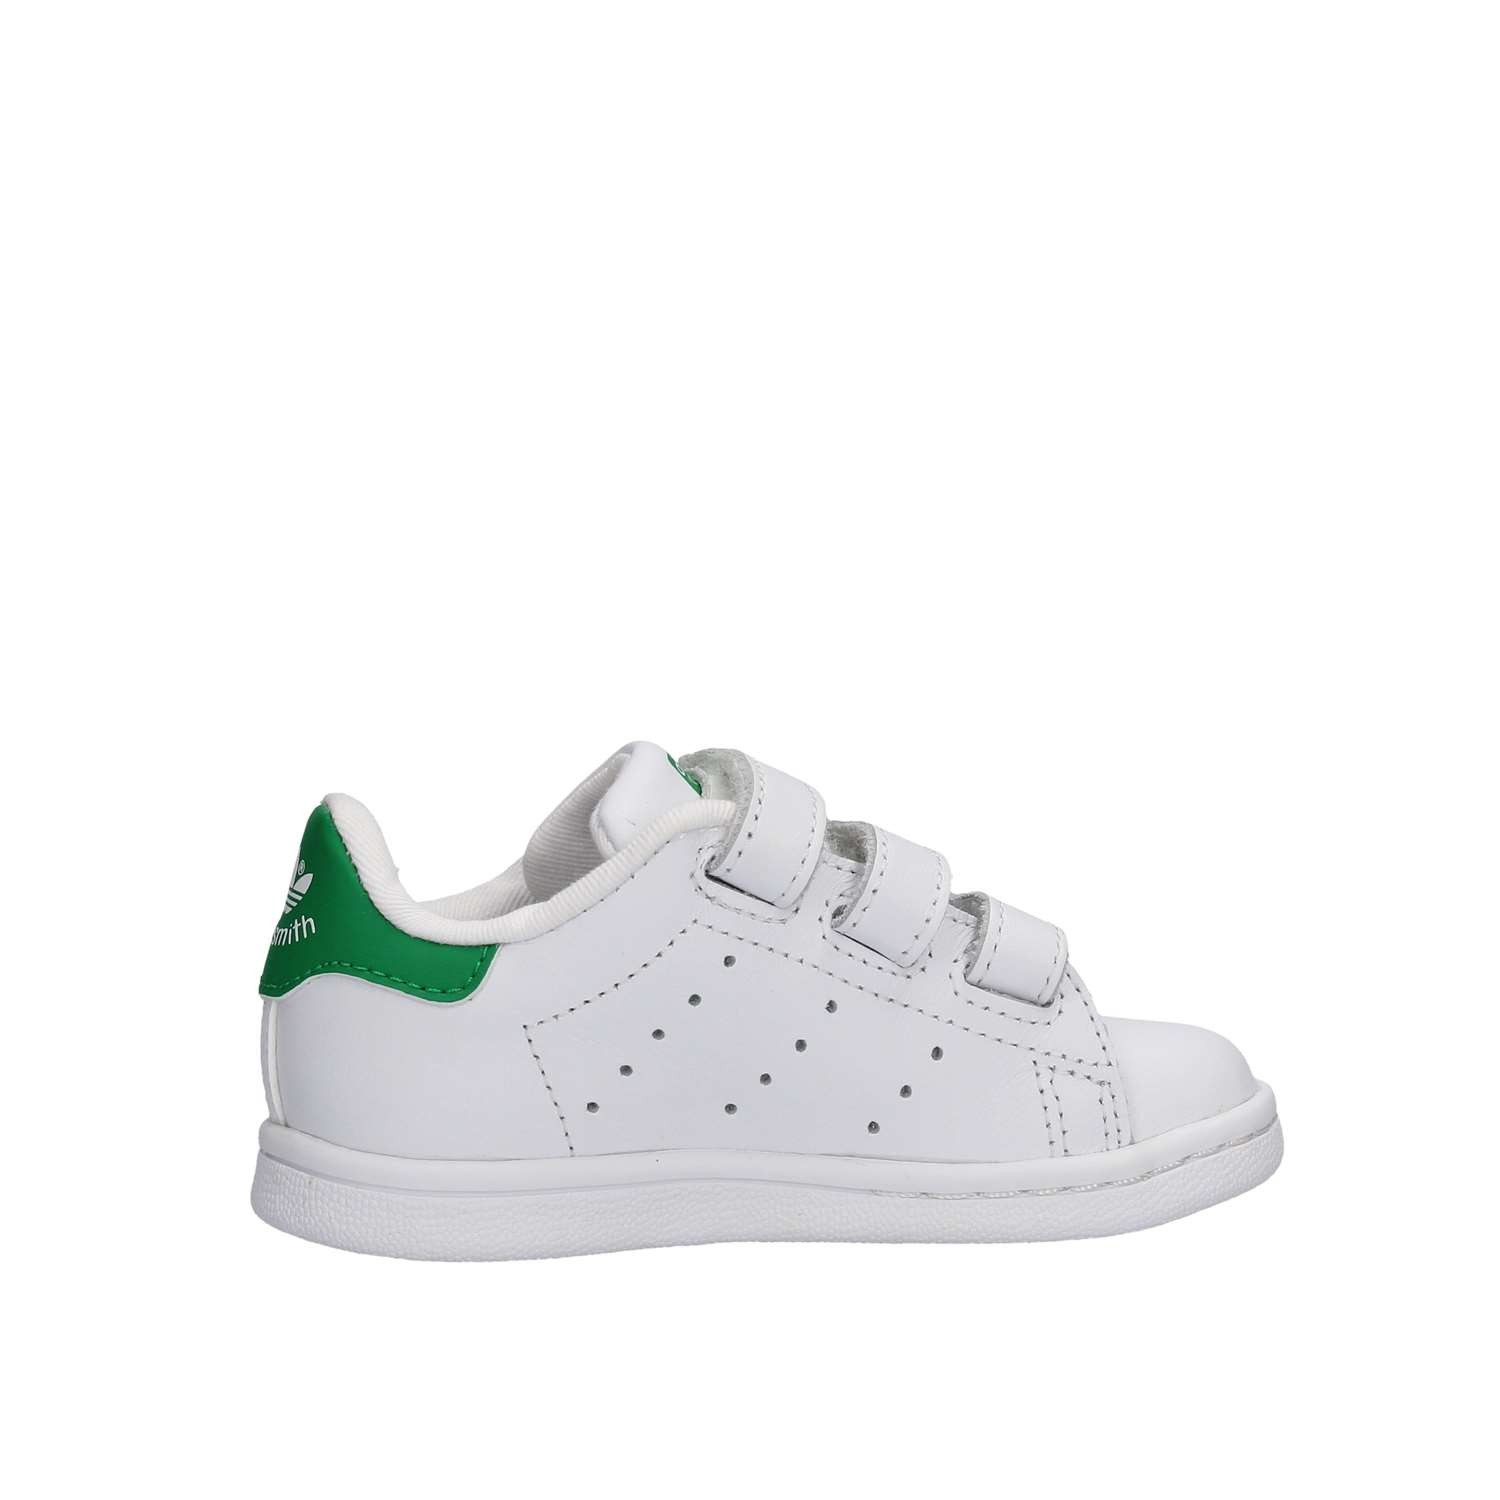 style ADIDAS stan smith bambino cf biancoverde bz0520 acquista s